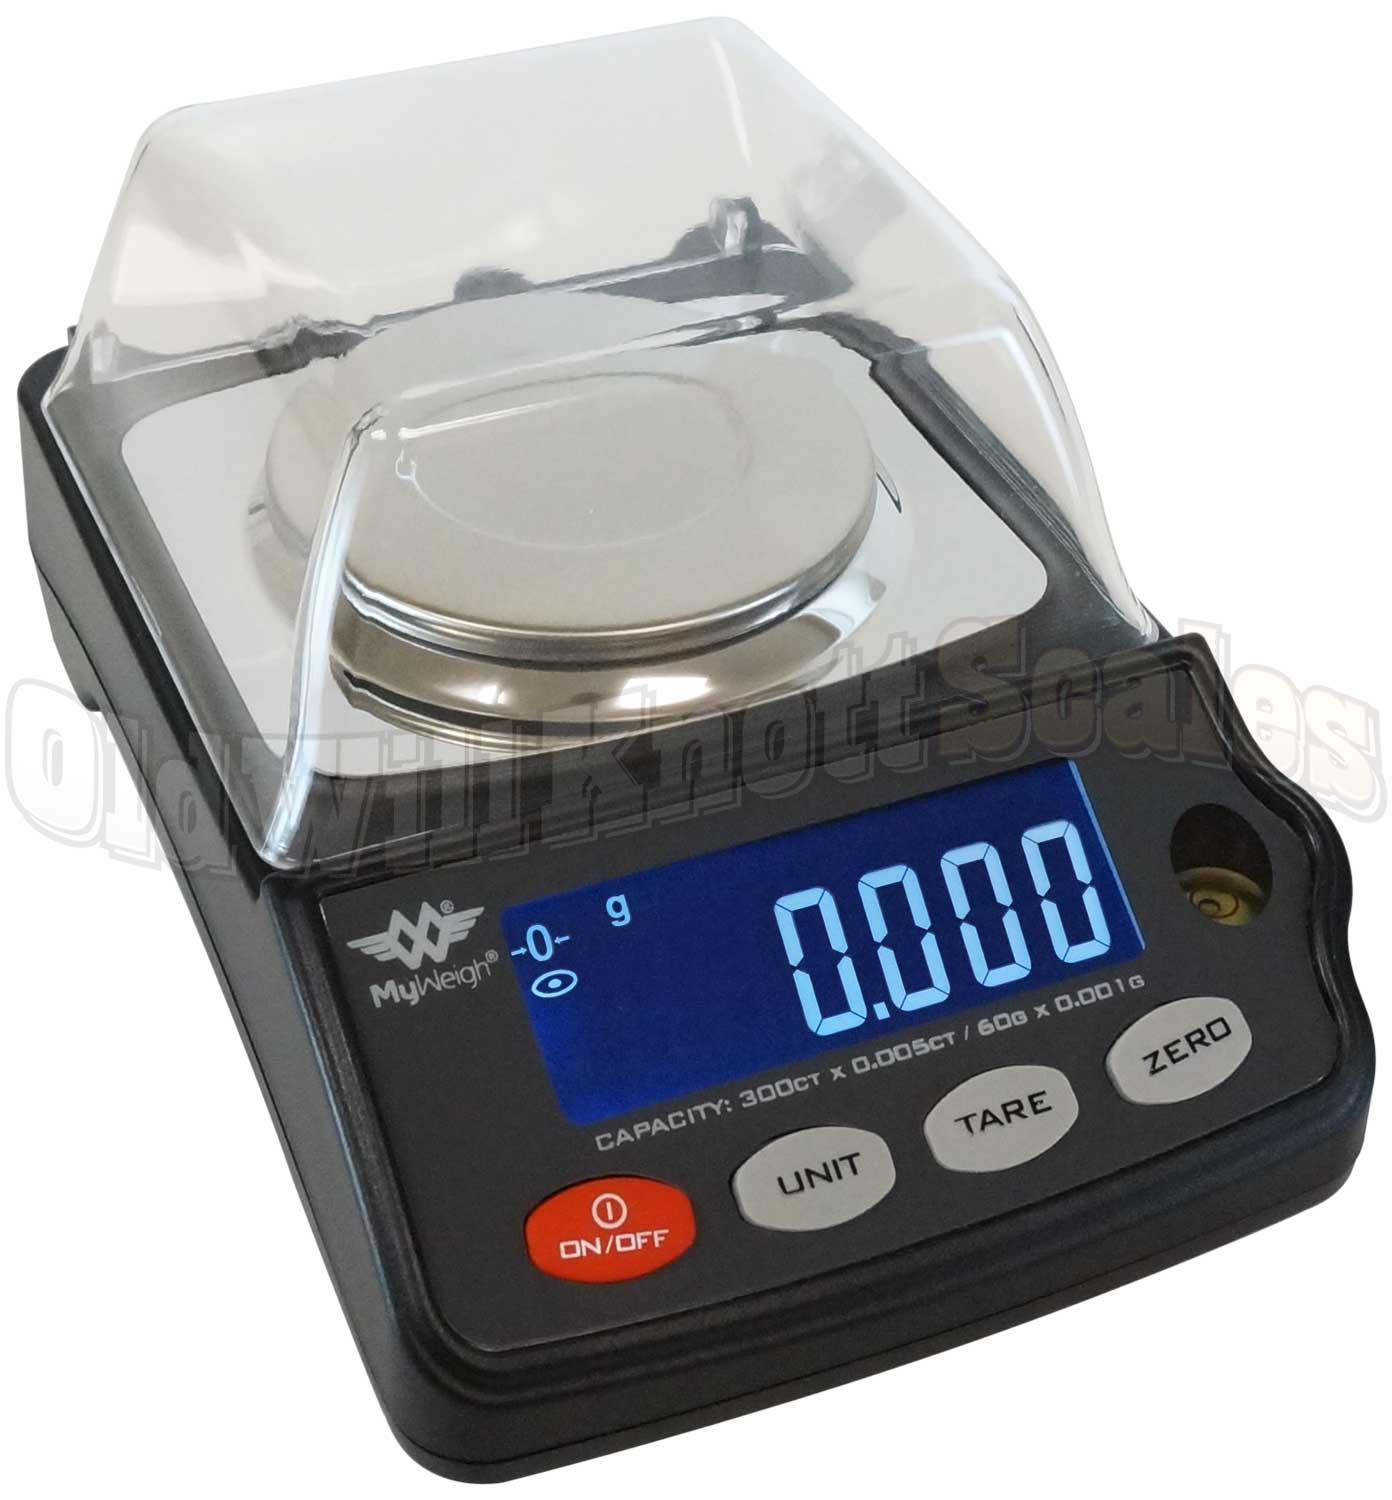 My Weigh Gempro 300 Compact Precision Scale With Storage Case